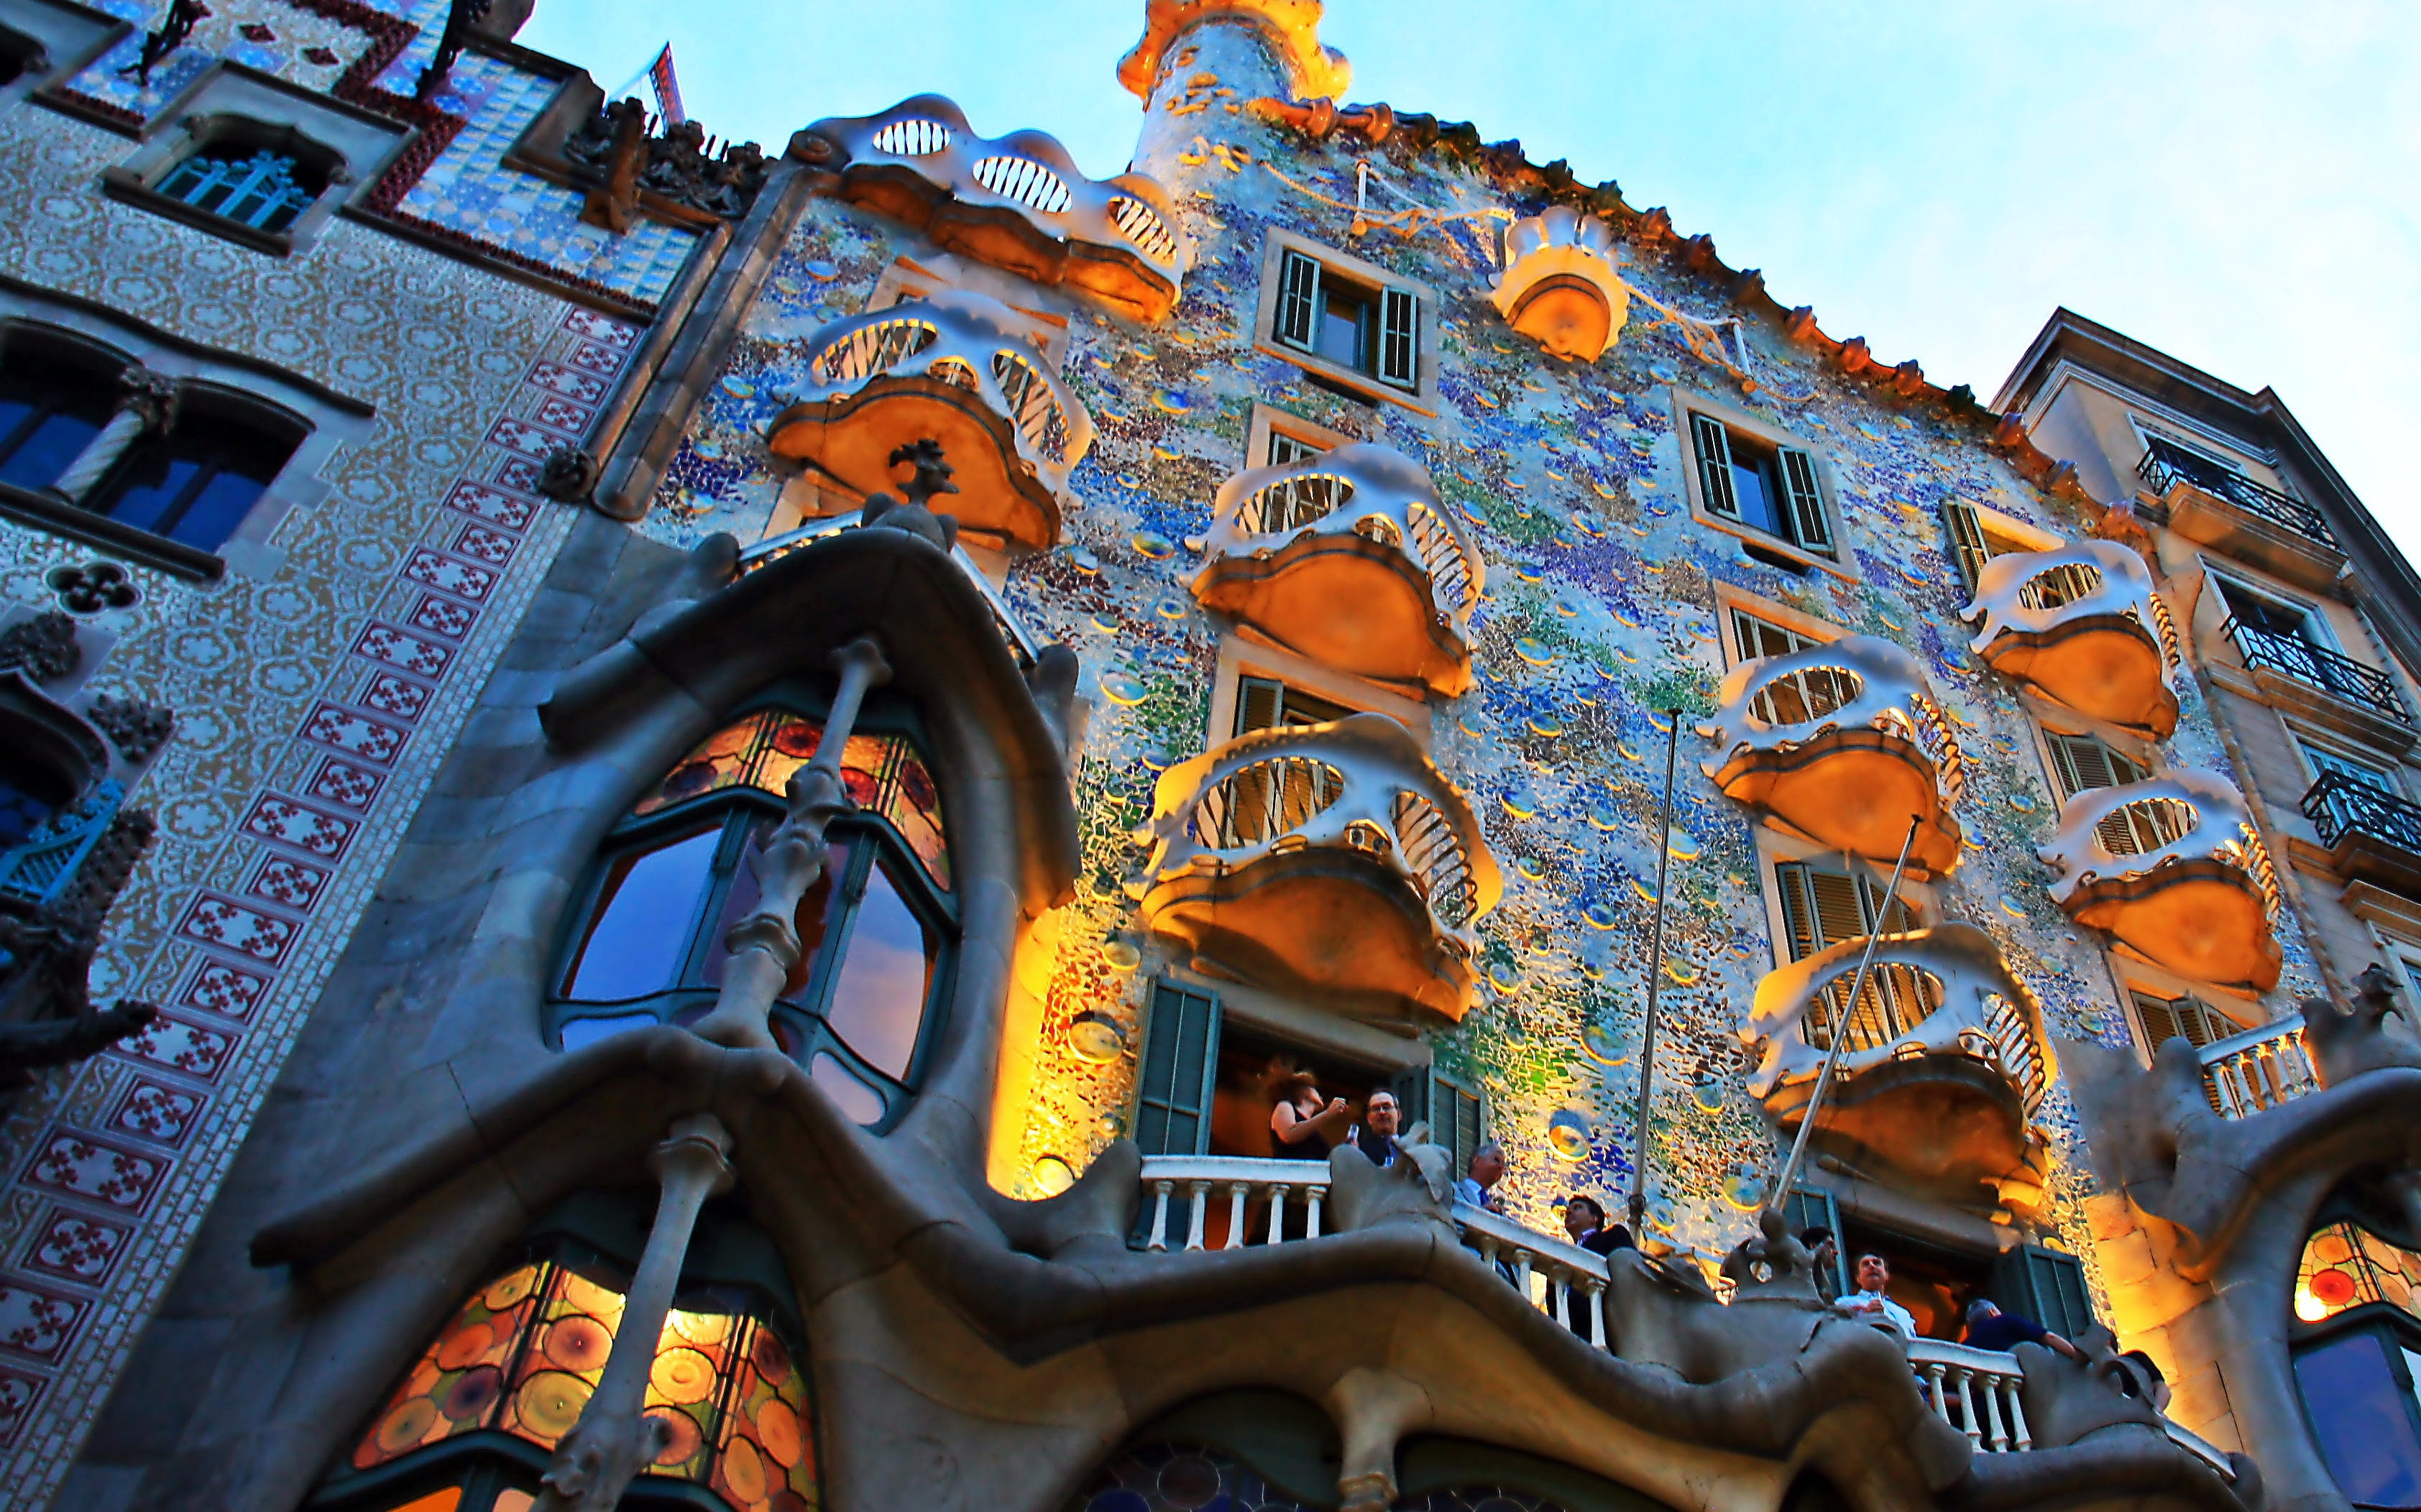 gaudi tour with skip the line access to casa battlo-1